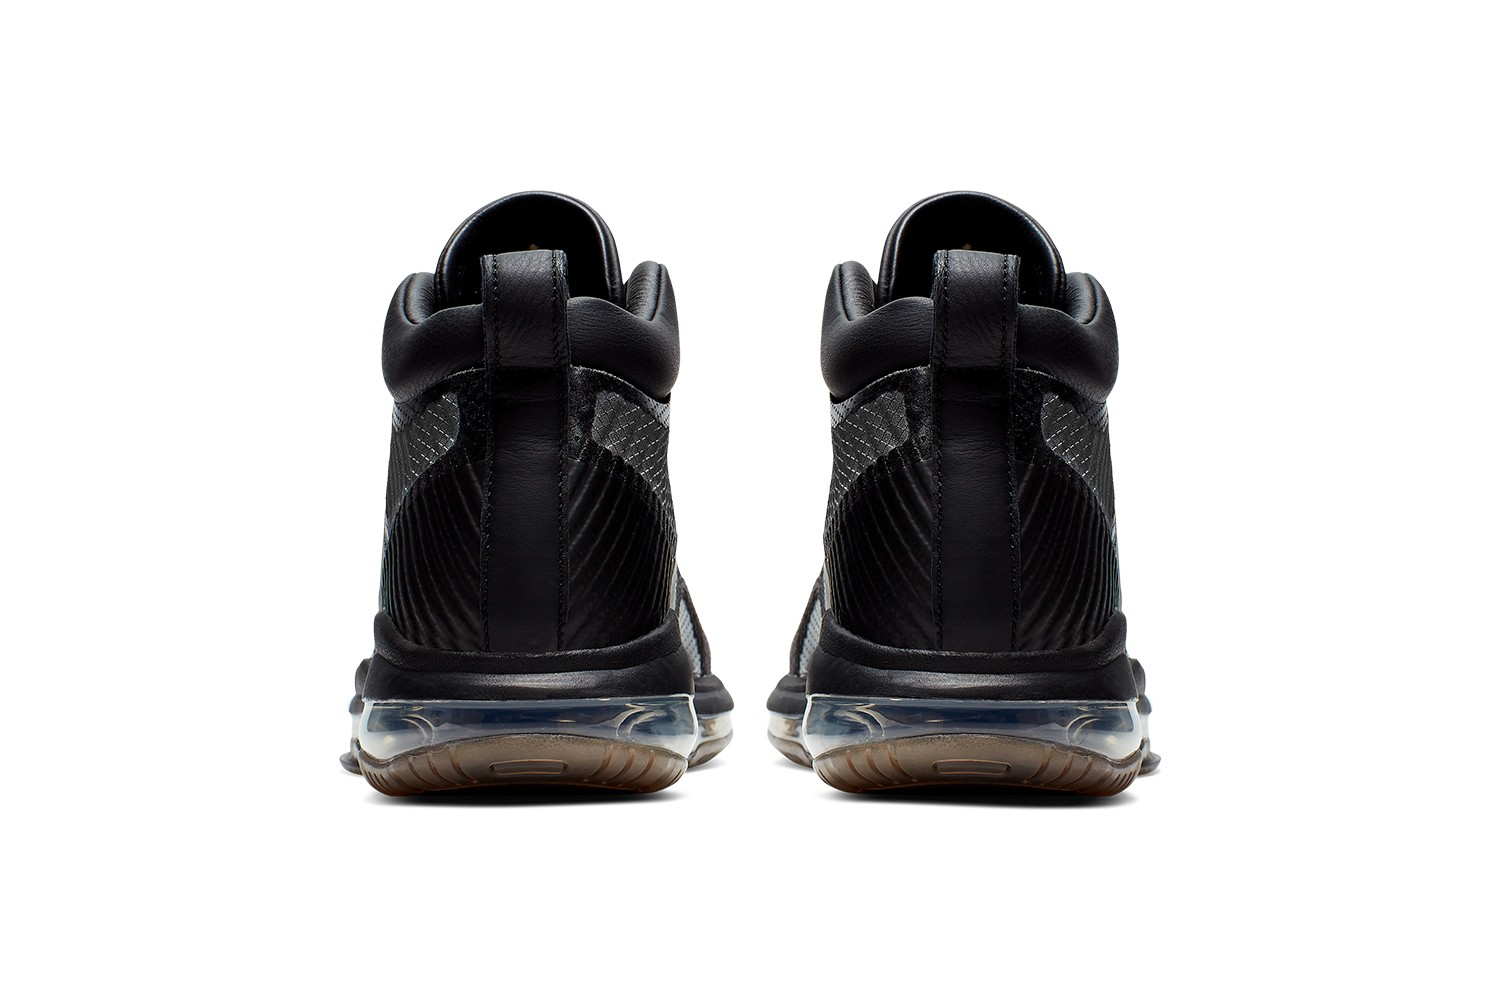 ジョンエリオット x レブロン x ナイキ アイコン NBA レイカーズ John Elliott Nike Lebron Icon QS Triple Black aq0114-001 colorway release date info buy may 20 2019